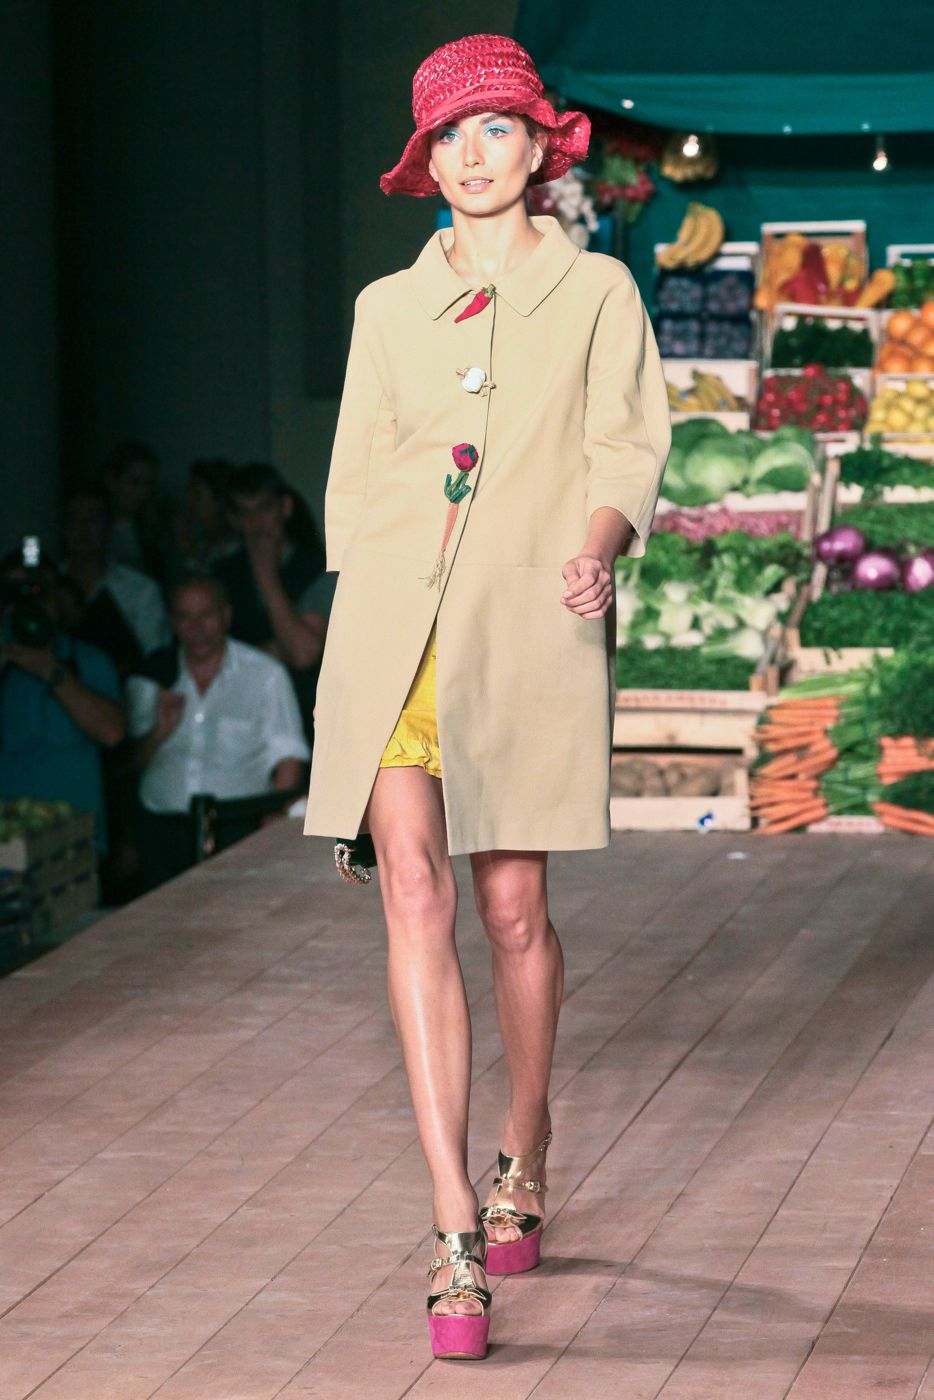 Moschino Cheap & Chic SS 2012